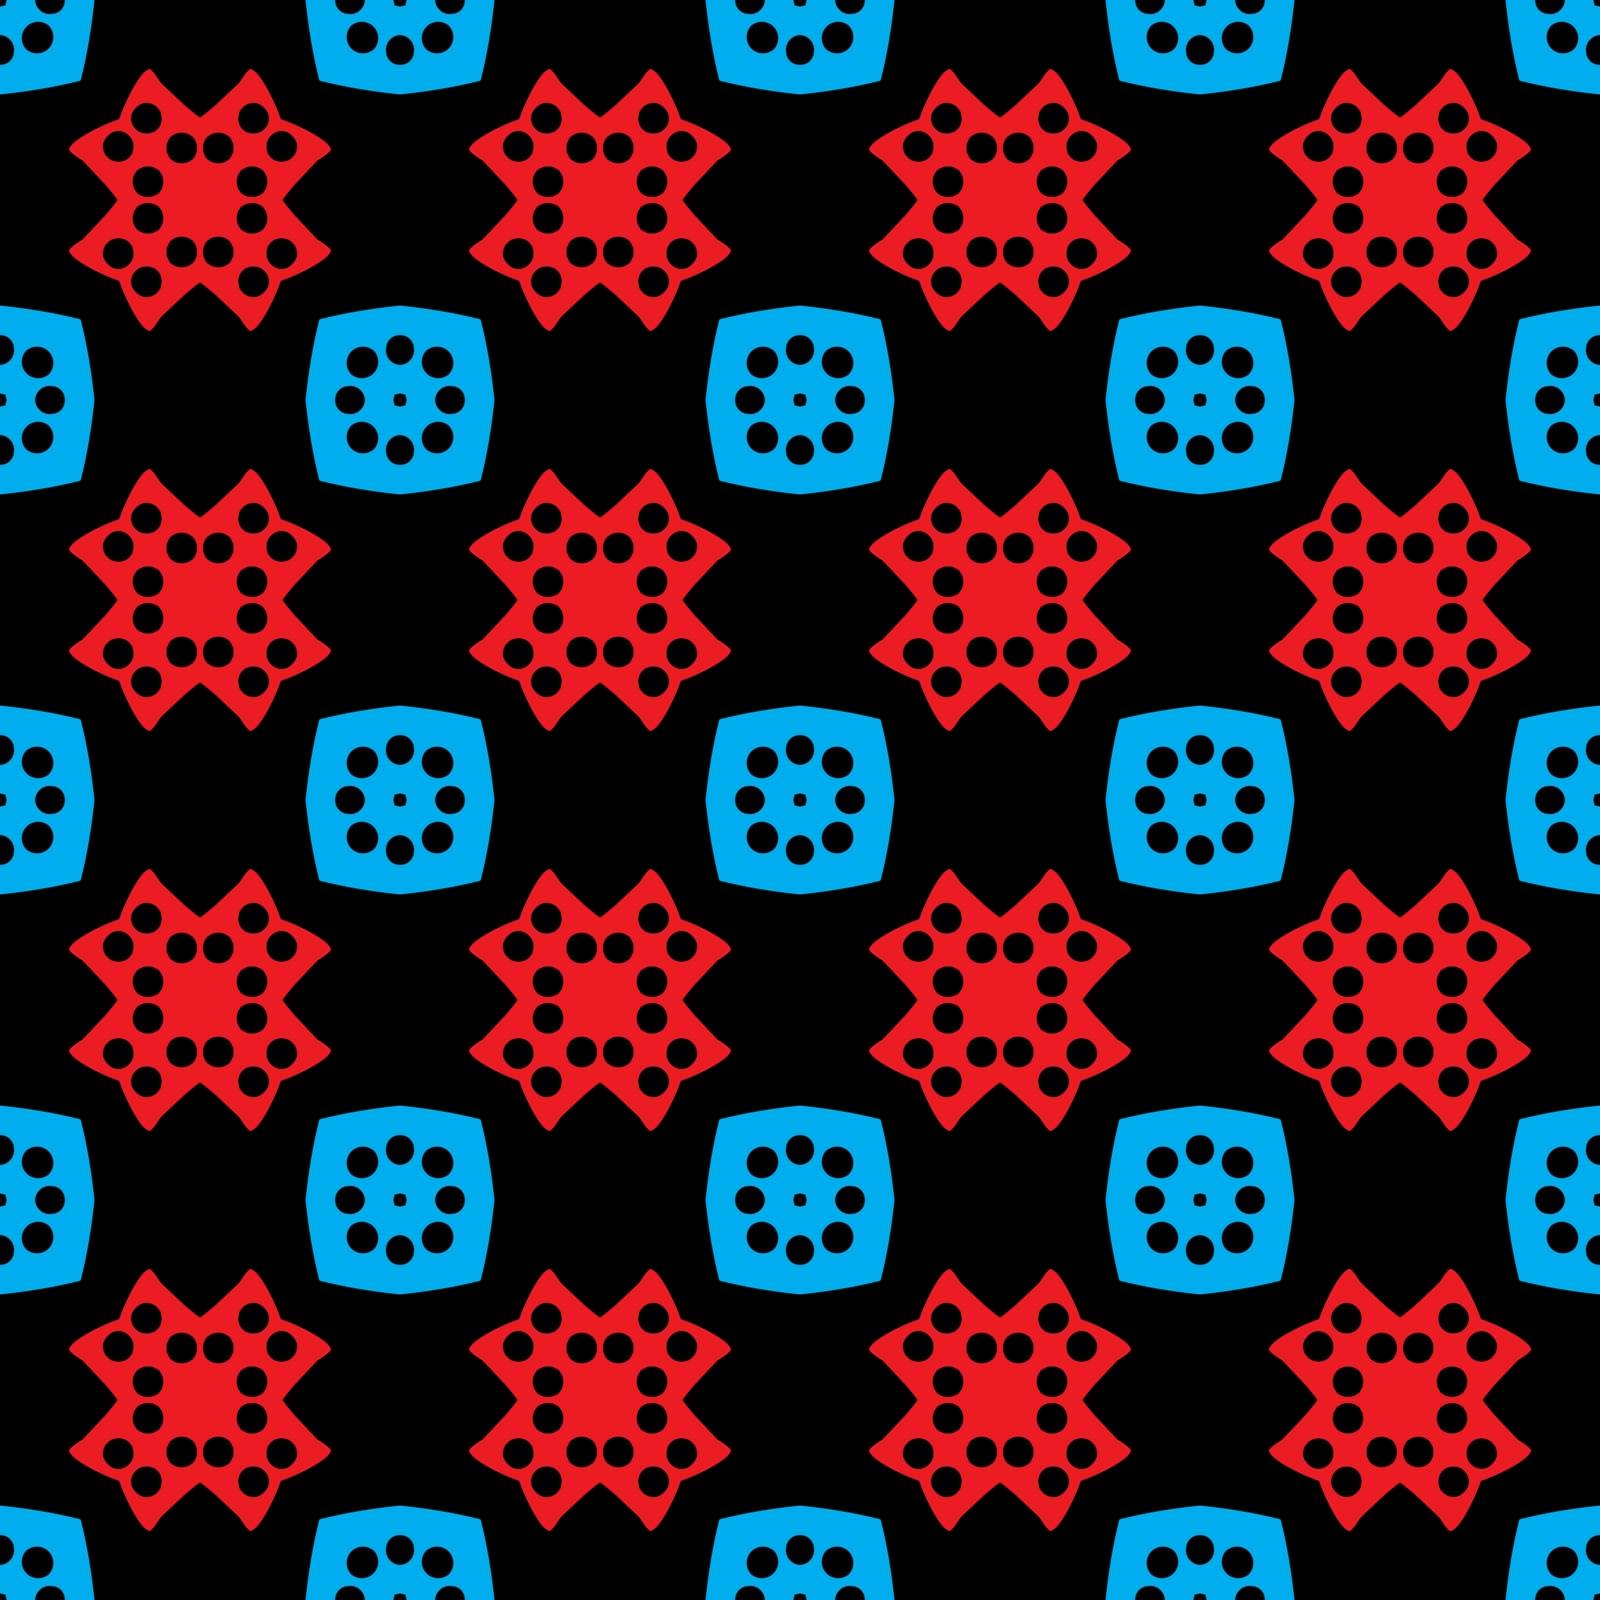 Seamless illustrated pattern made of abstract elements in red, blue and black